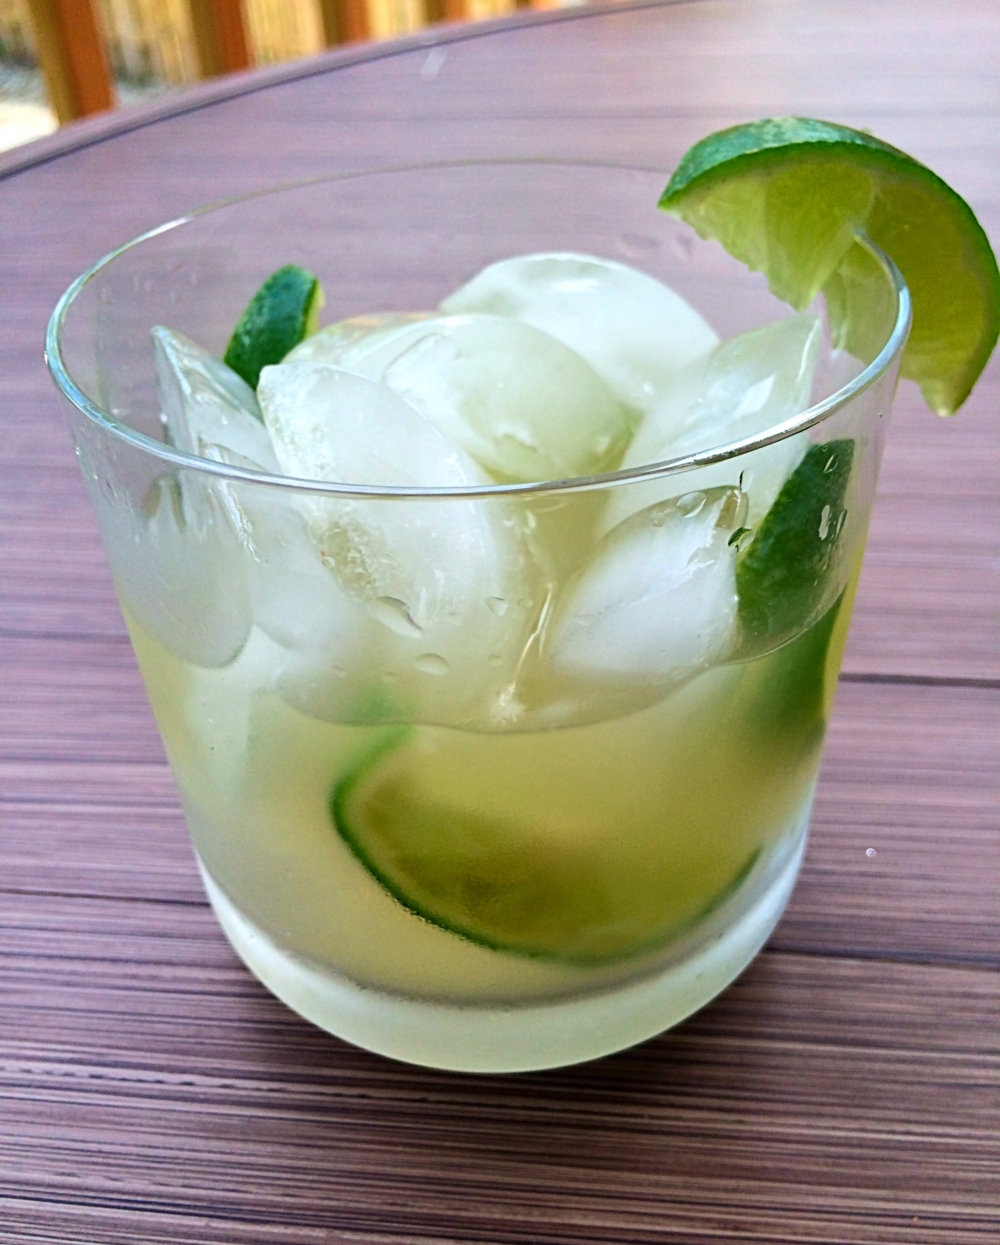 Simple and refreshing, the Caipirnha is the perfect summer cocktail!